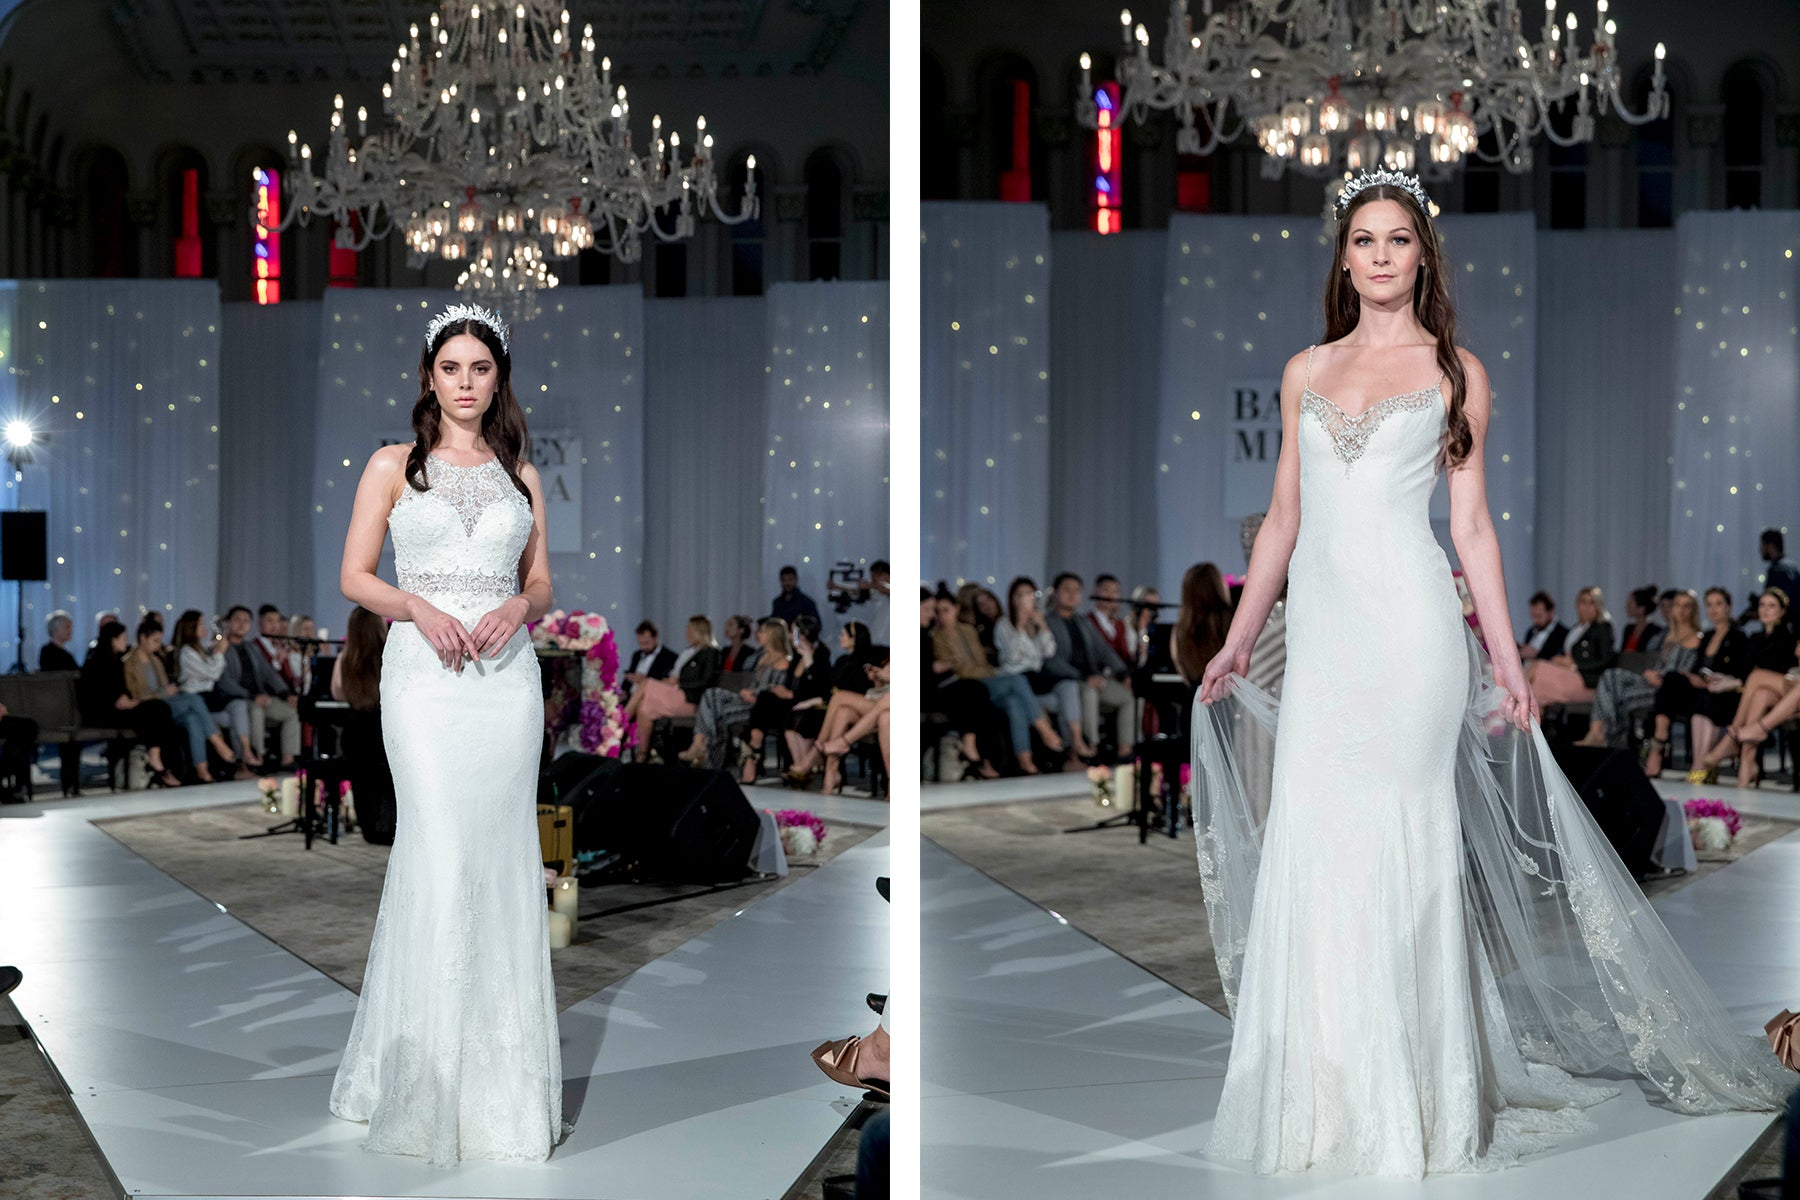 Eternal_Bridal_Badgley_Mischak_Parade_4